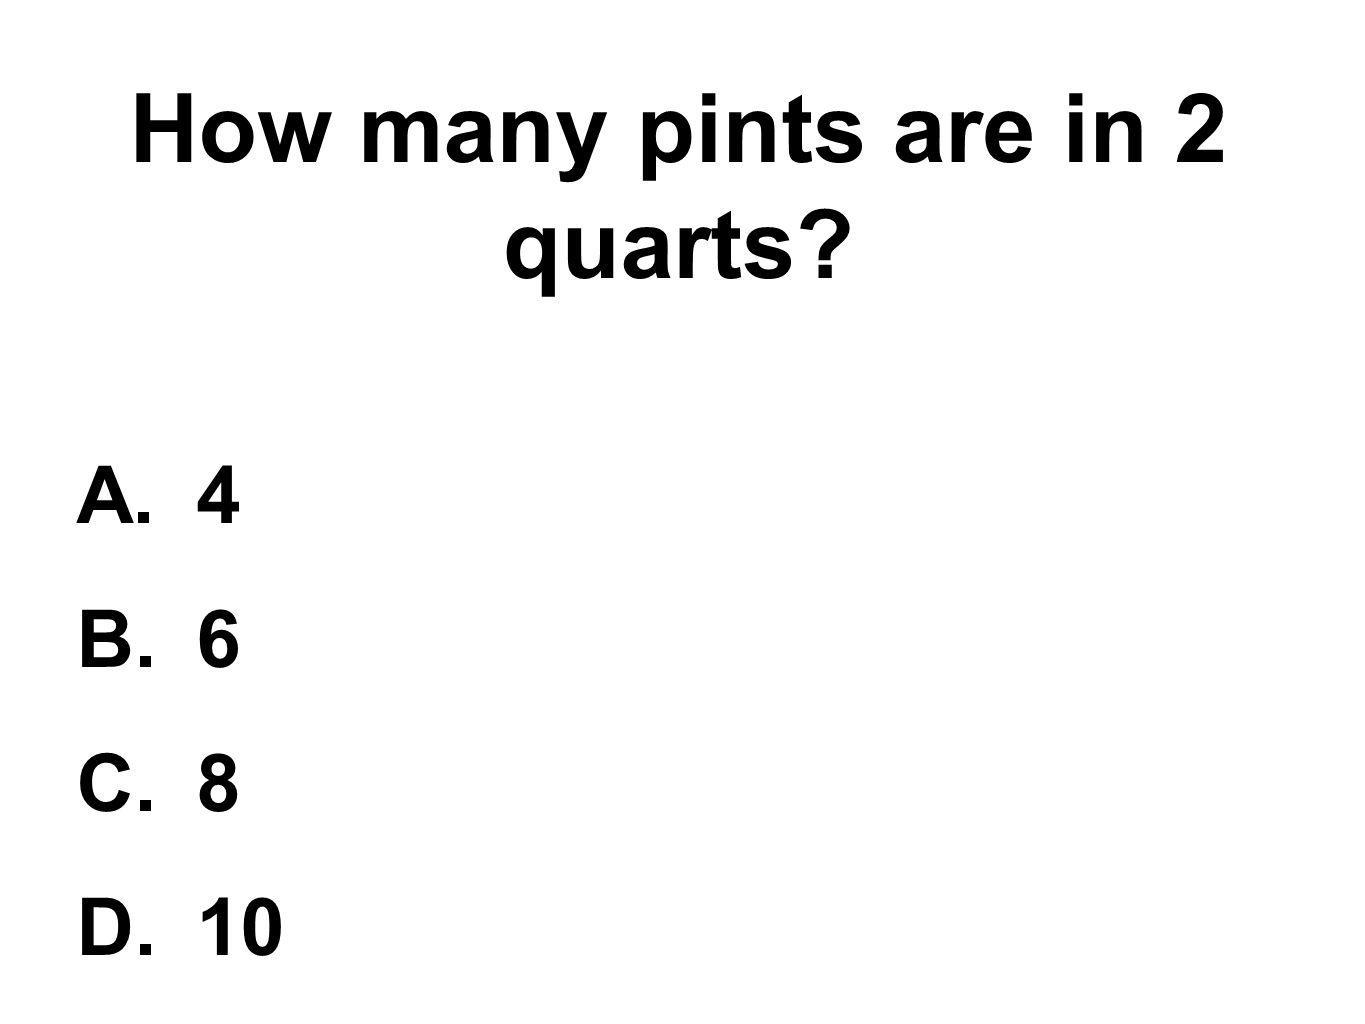 How many pints are in 2 quarts